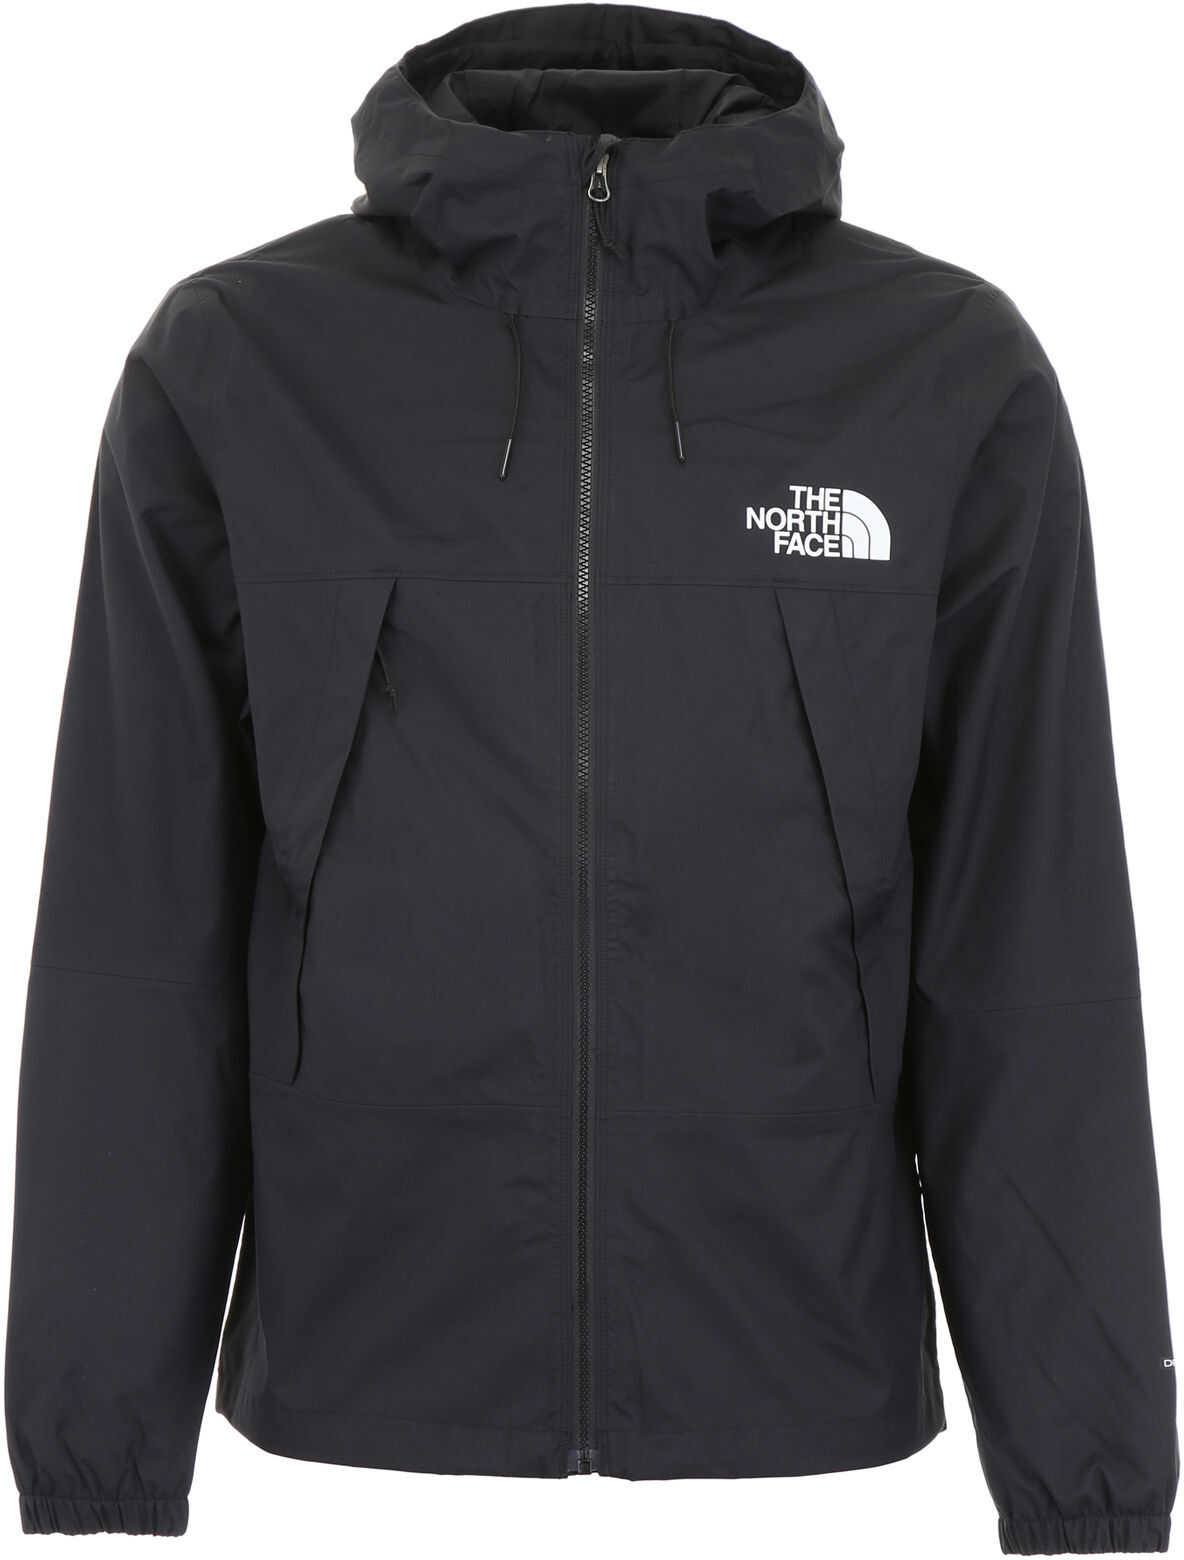 The North Face 1990 Mountain Jacket BLACK WHITE